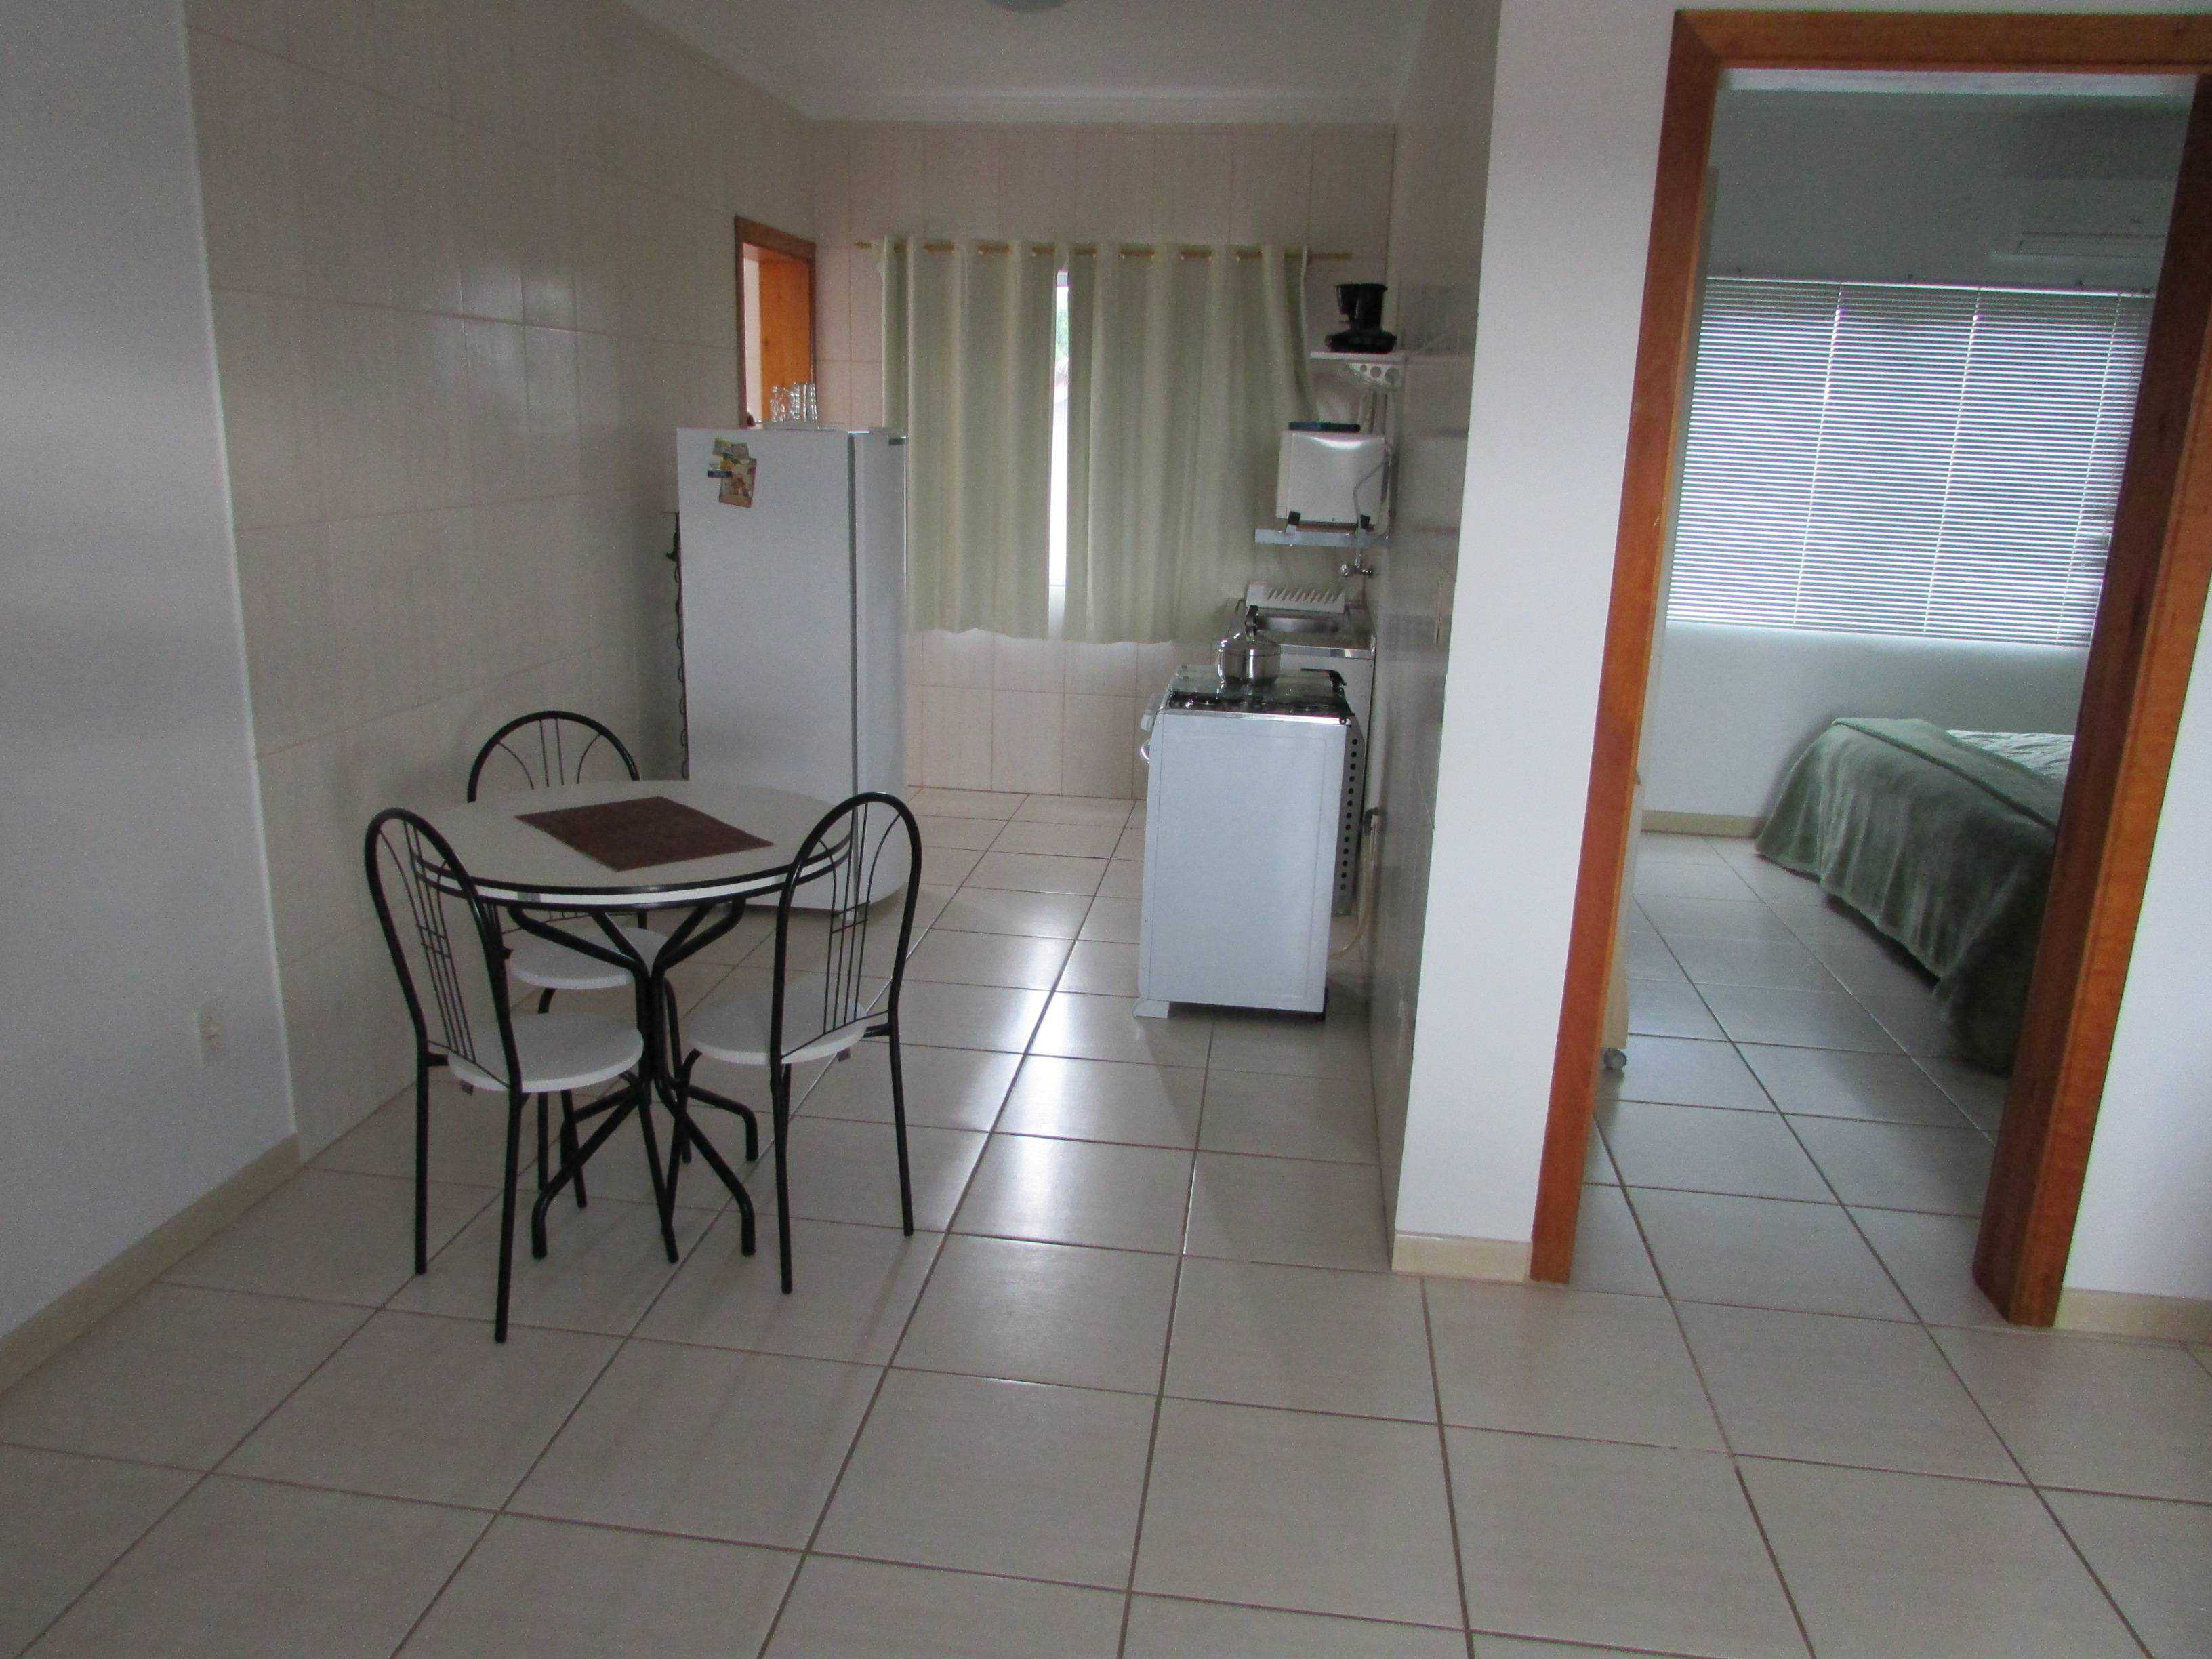 Kitchen with refrigerator, stove, microwave, coffee maker, toaster.